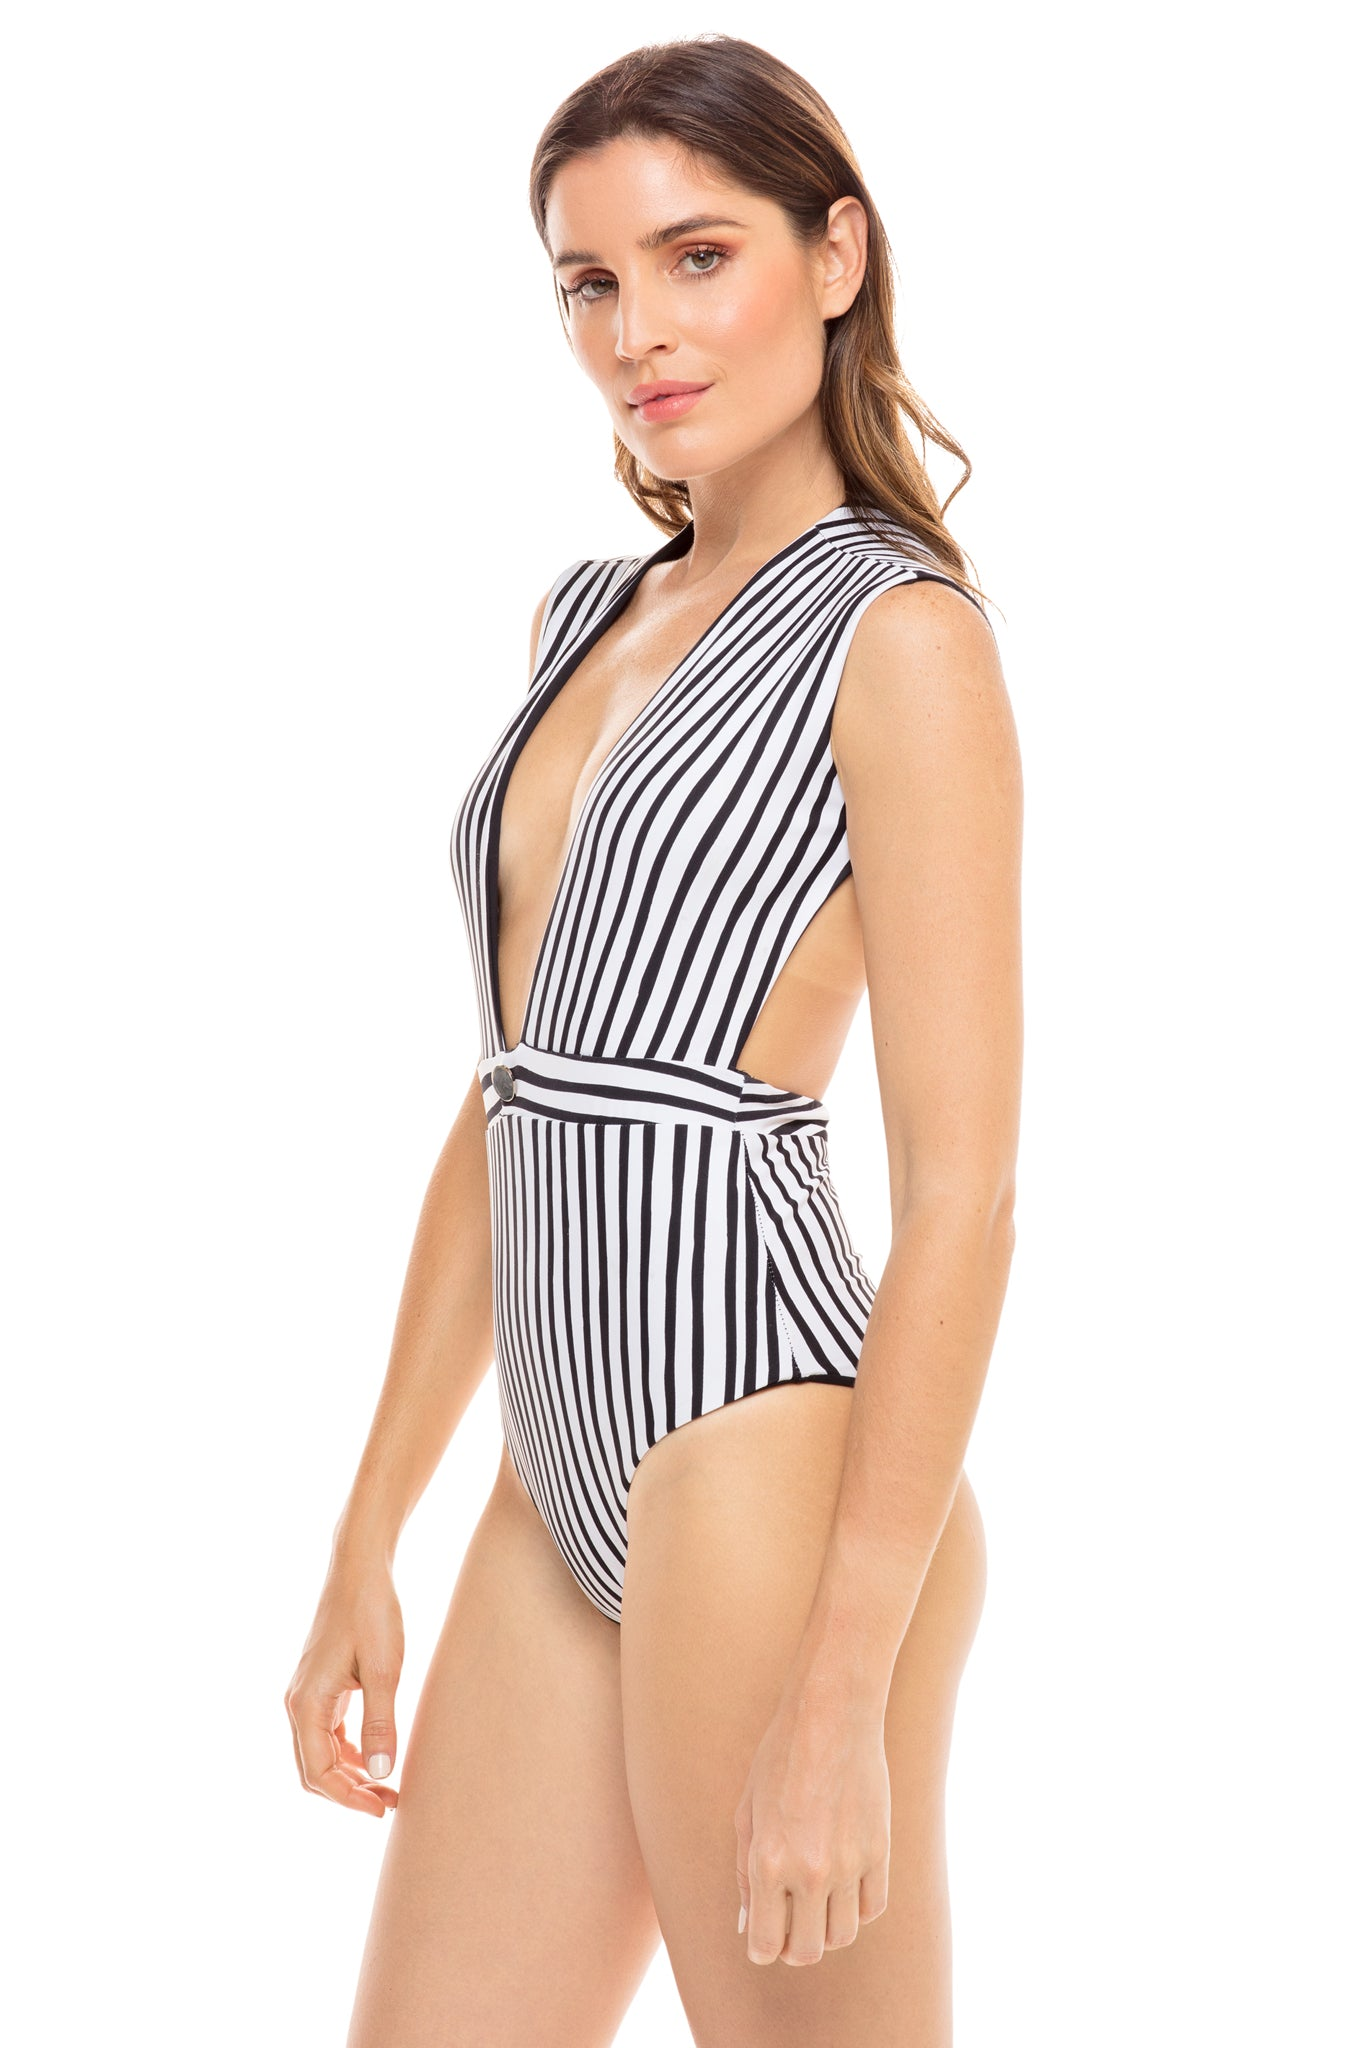 Emery cap sleeve one piece in black and white stripe. Model shot side